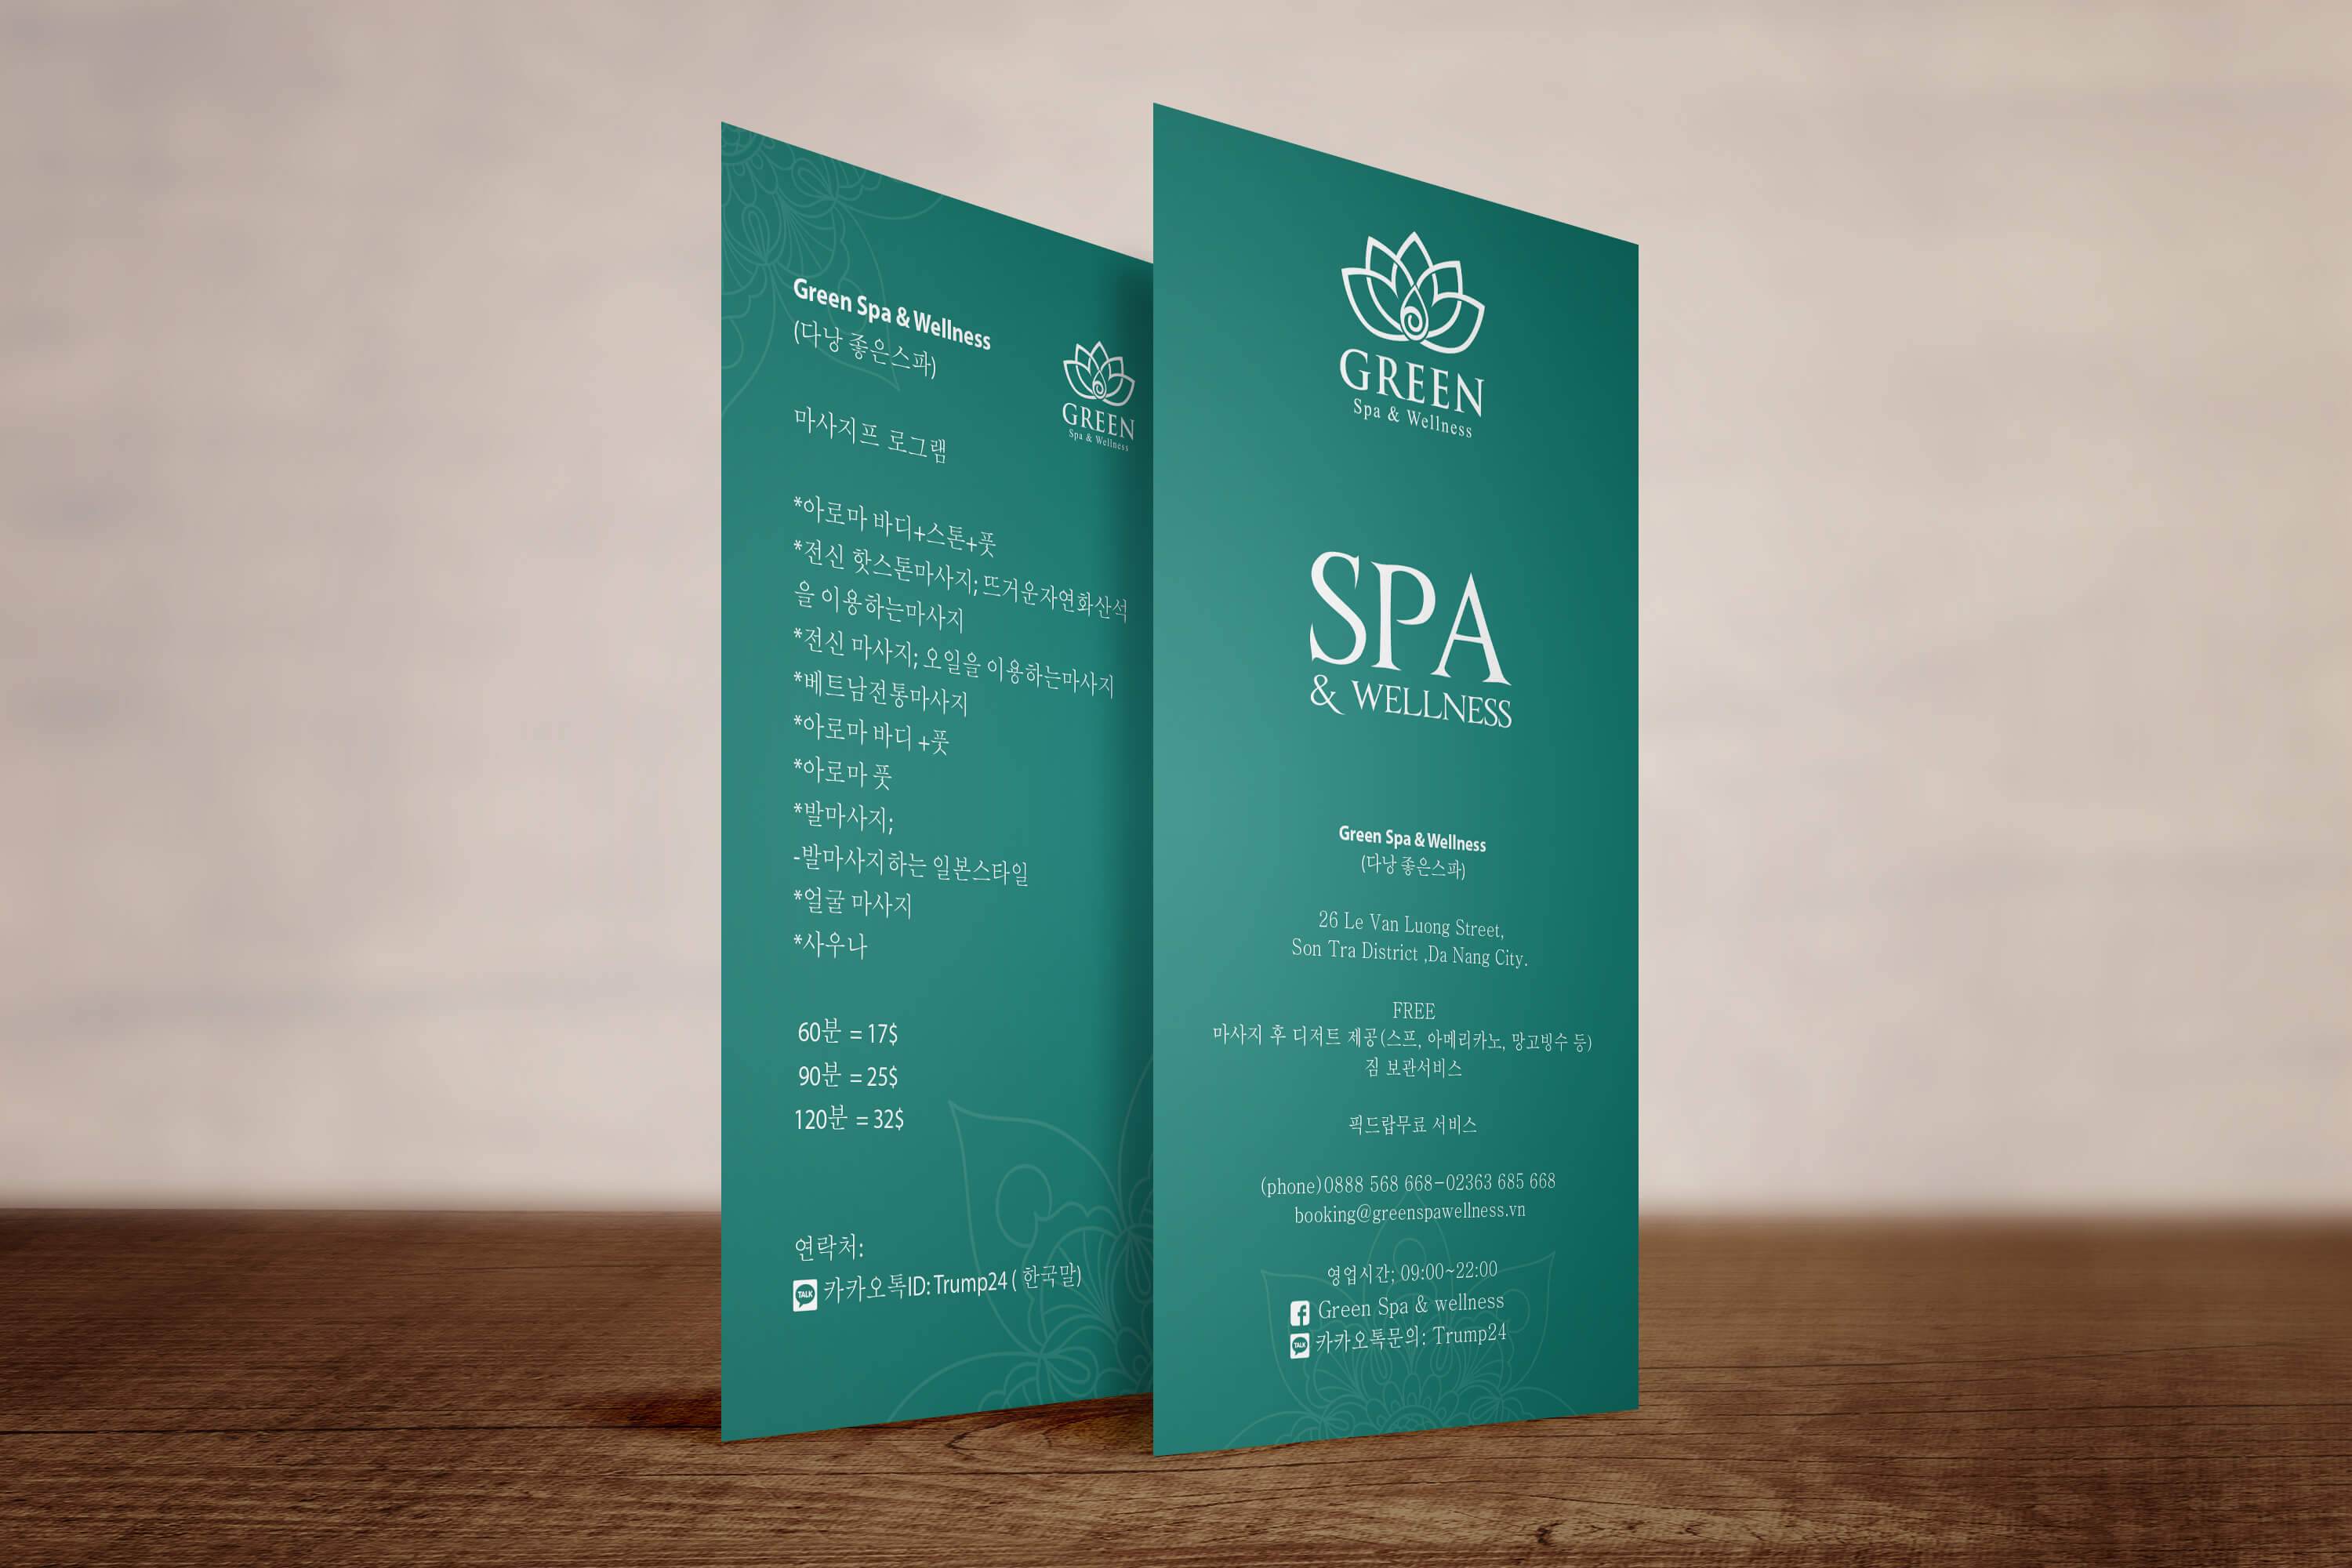 7 - Green Spa & Wellness